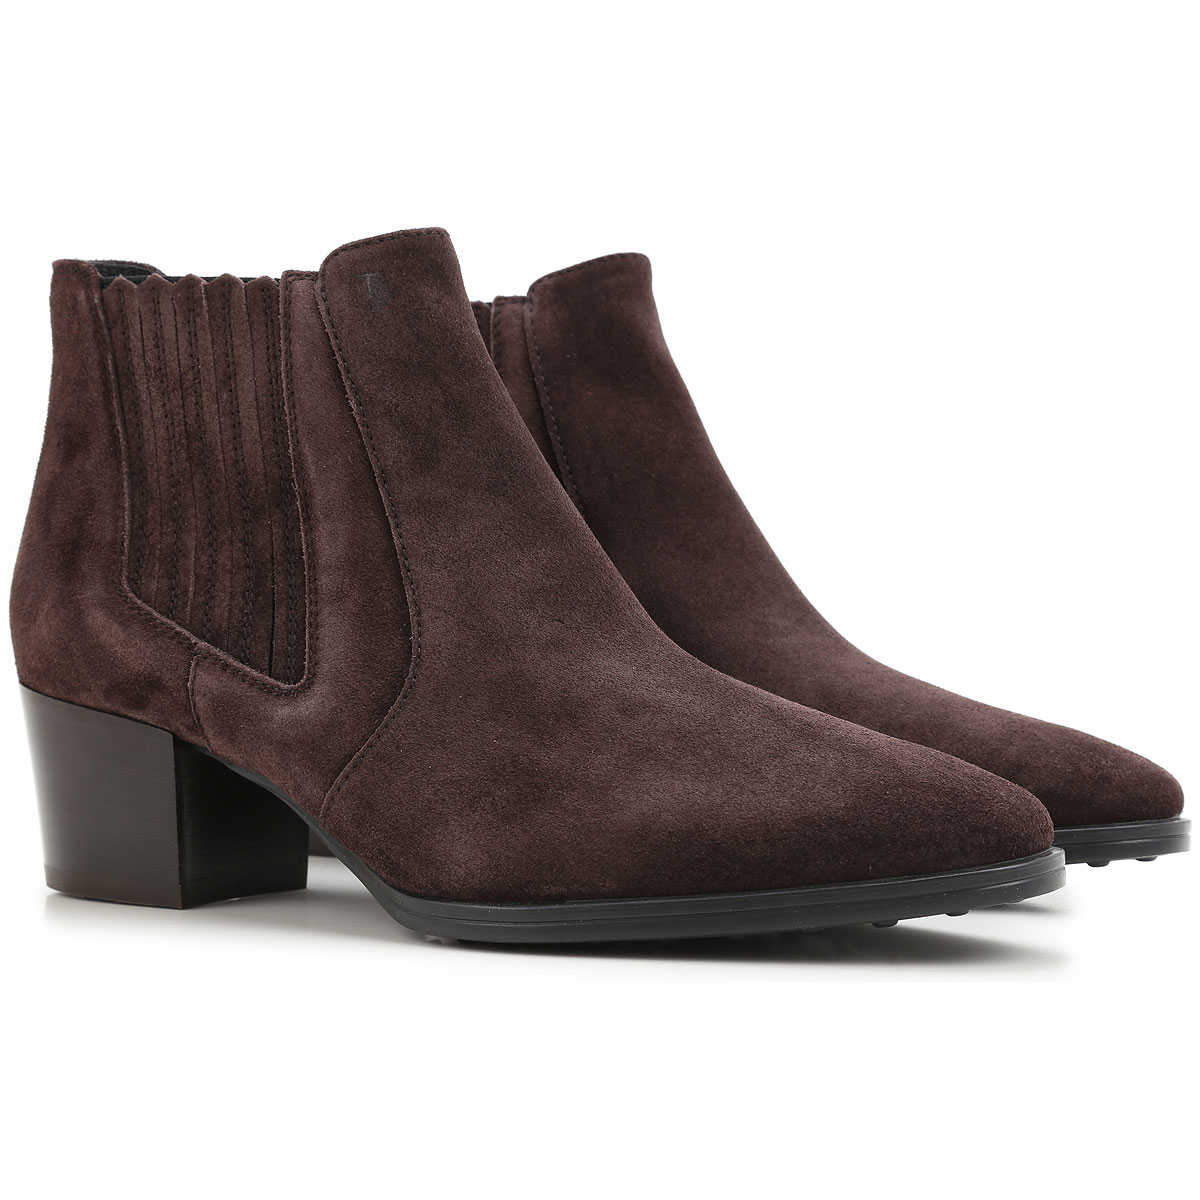 Tods Boots for Women